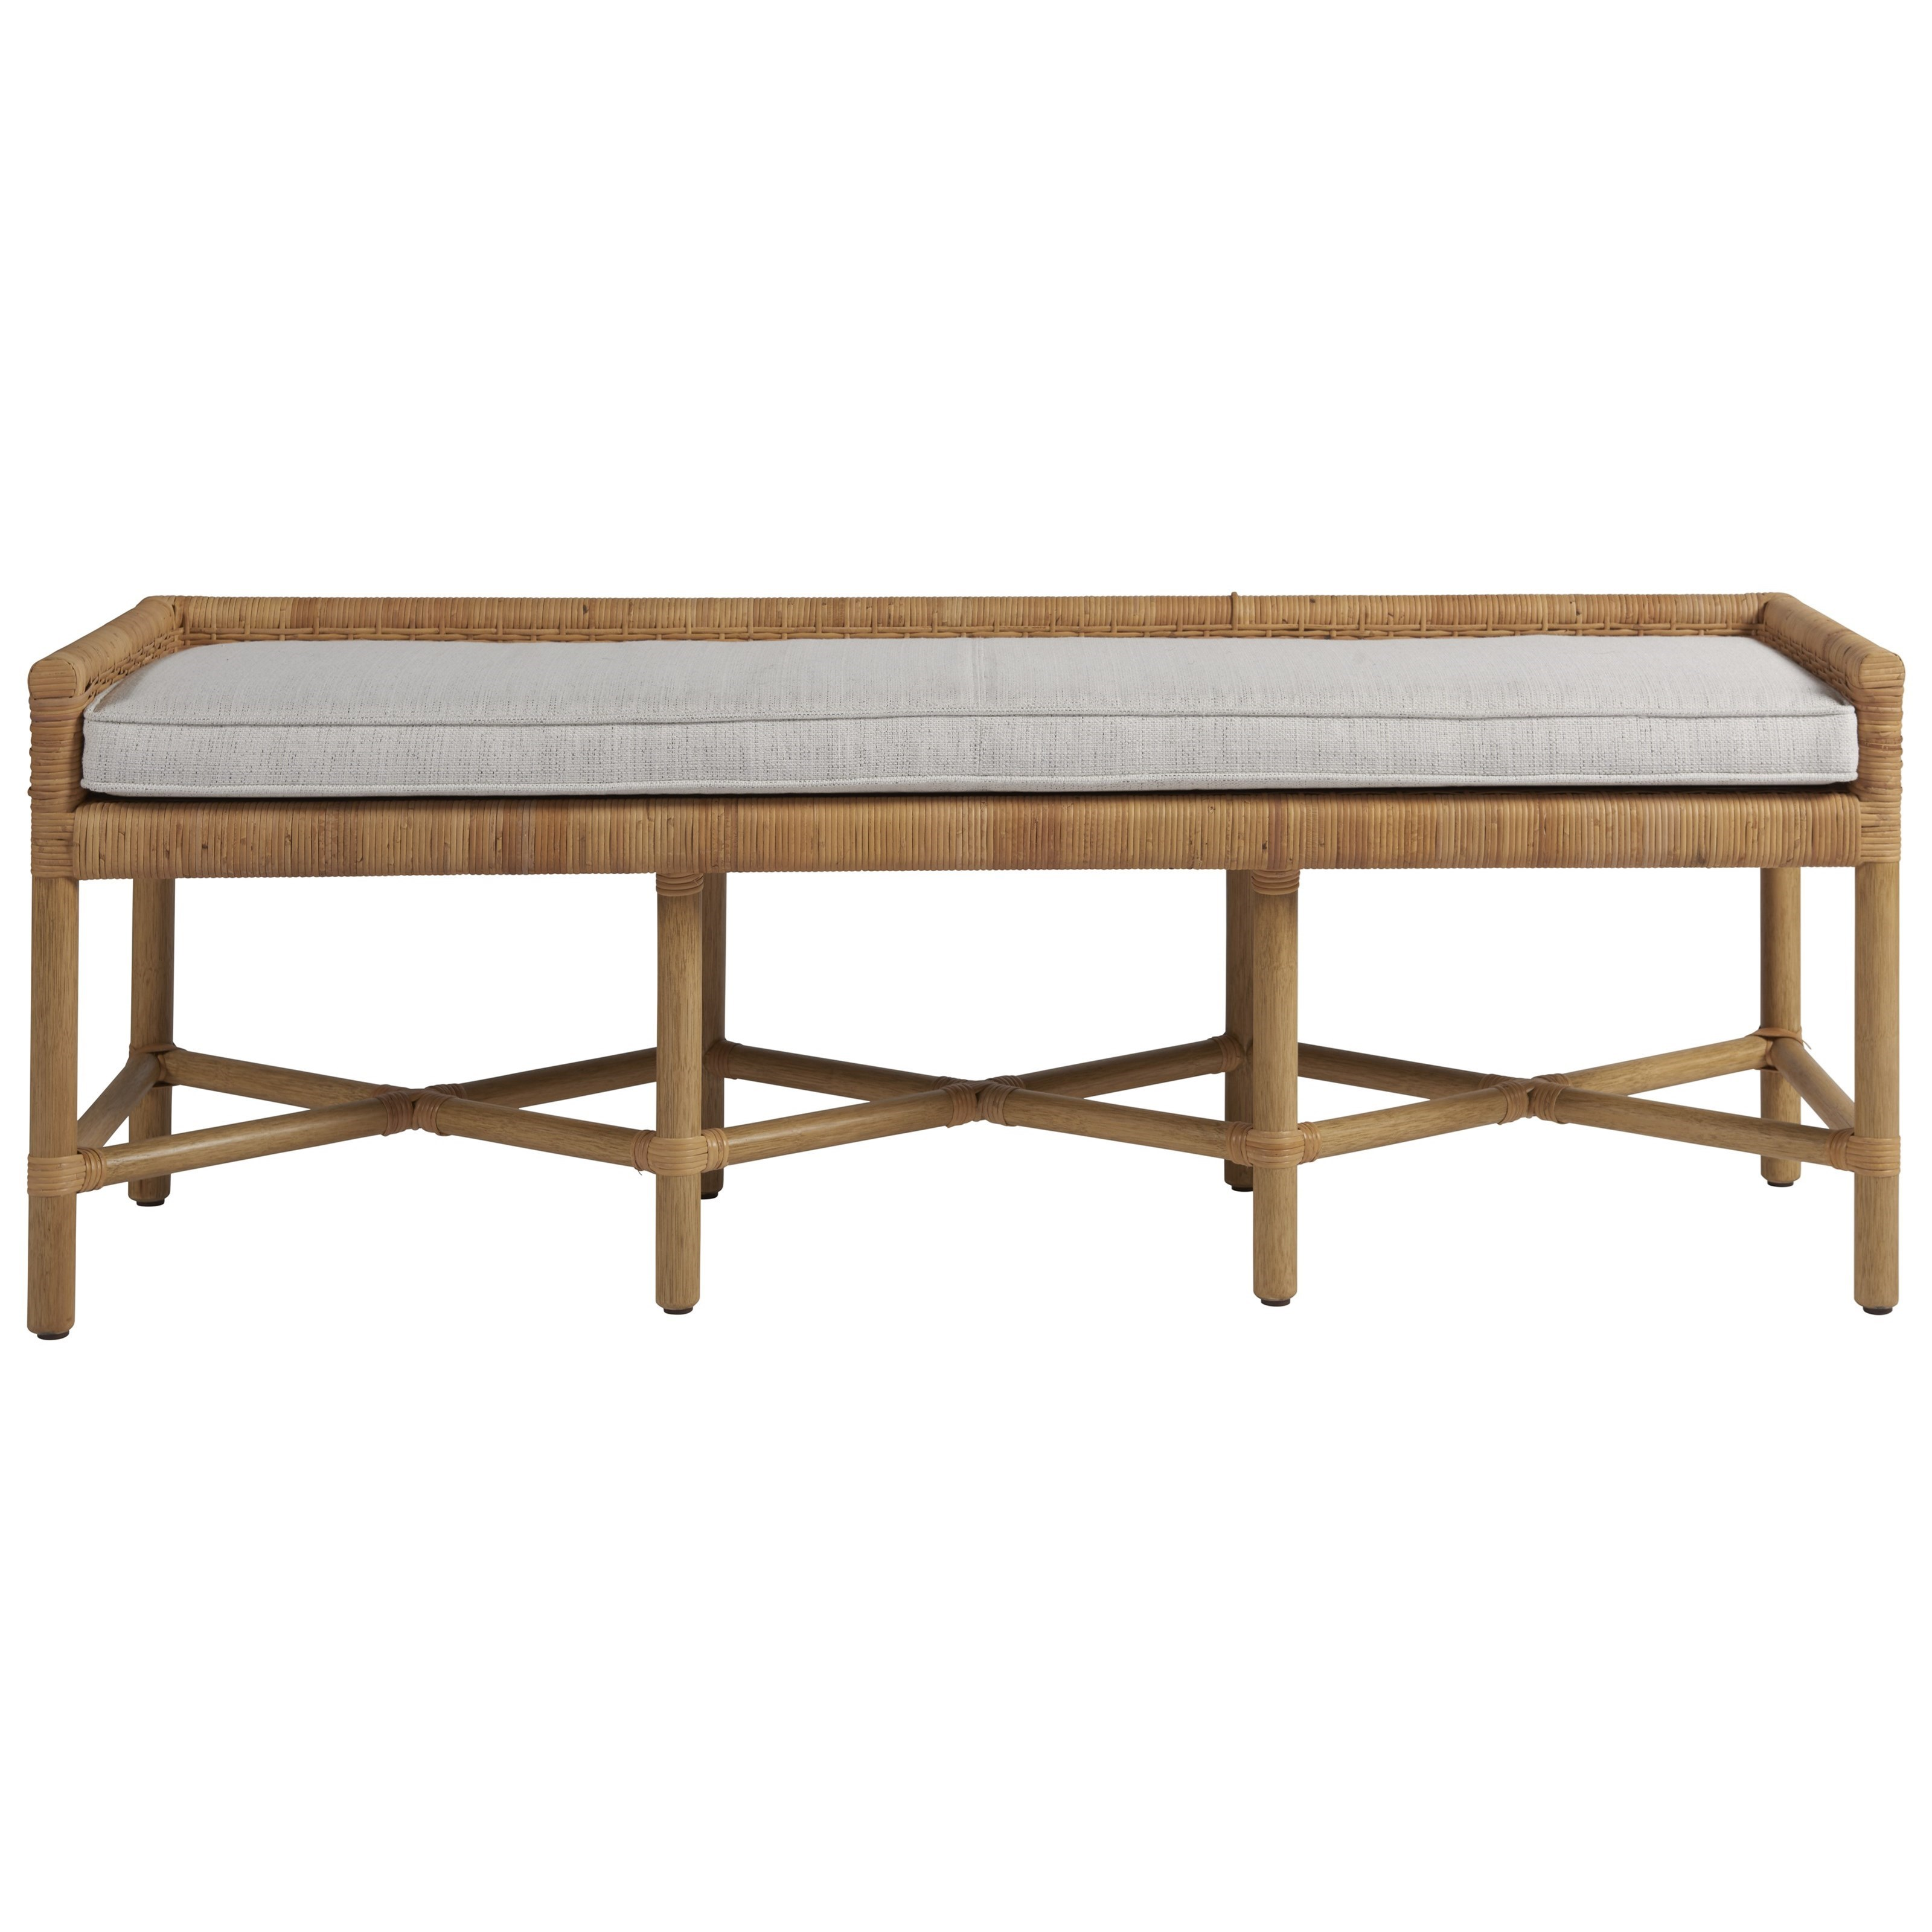 Coastal Living Home - Escape Bench by Universal at Baer's Furniture